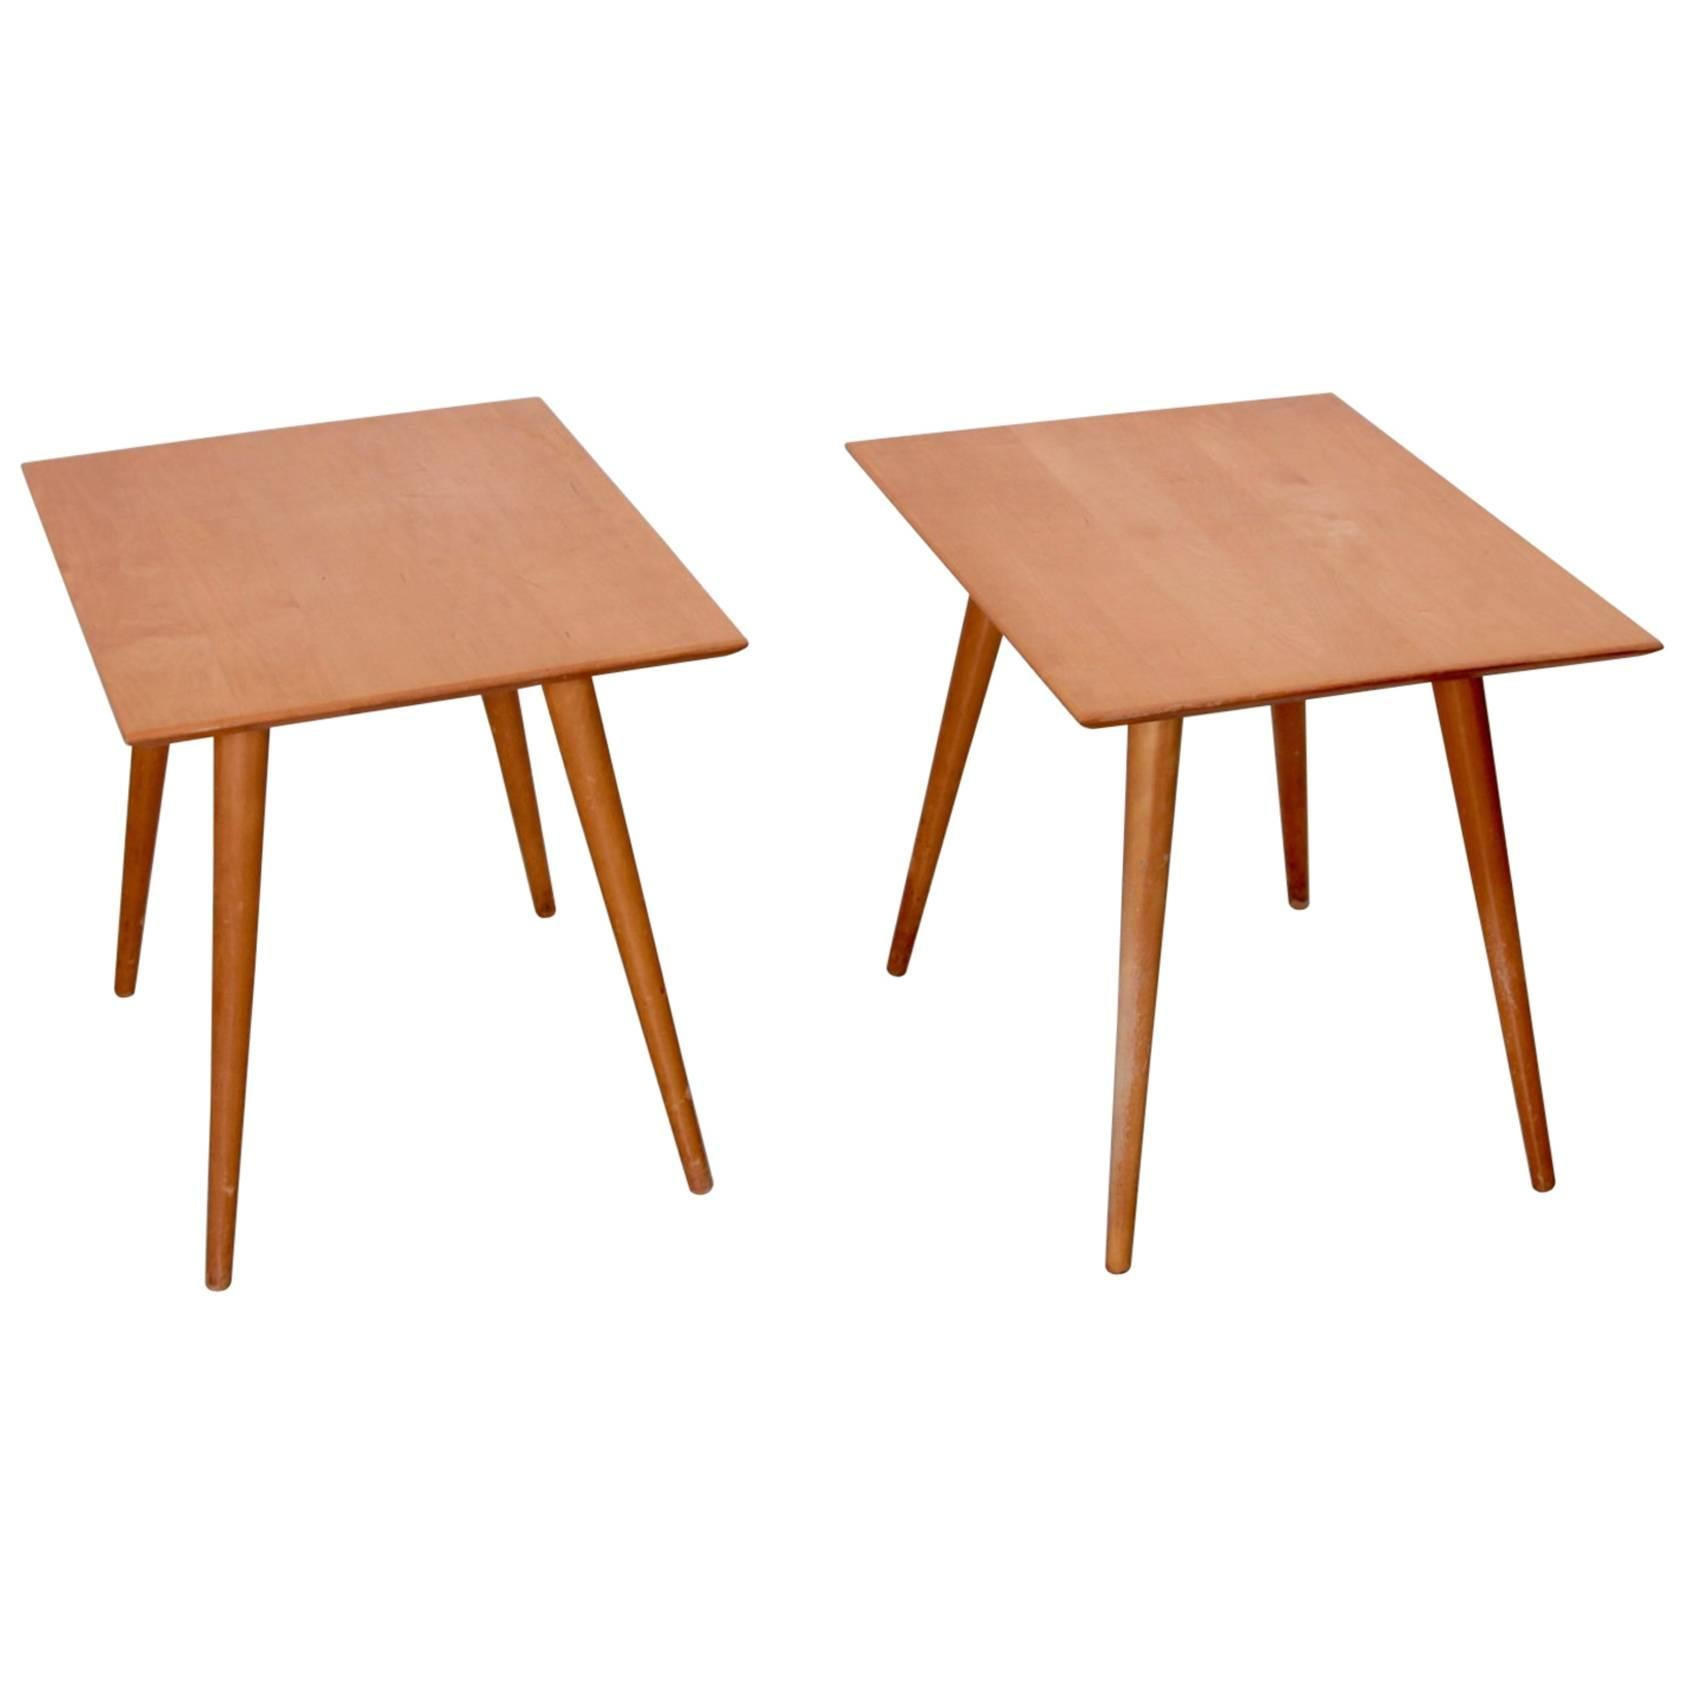 Pair of Paul McCobb End Tables for Winchendon, Planner Group Series